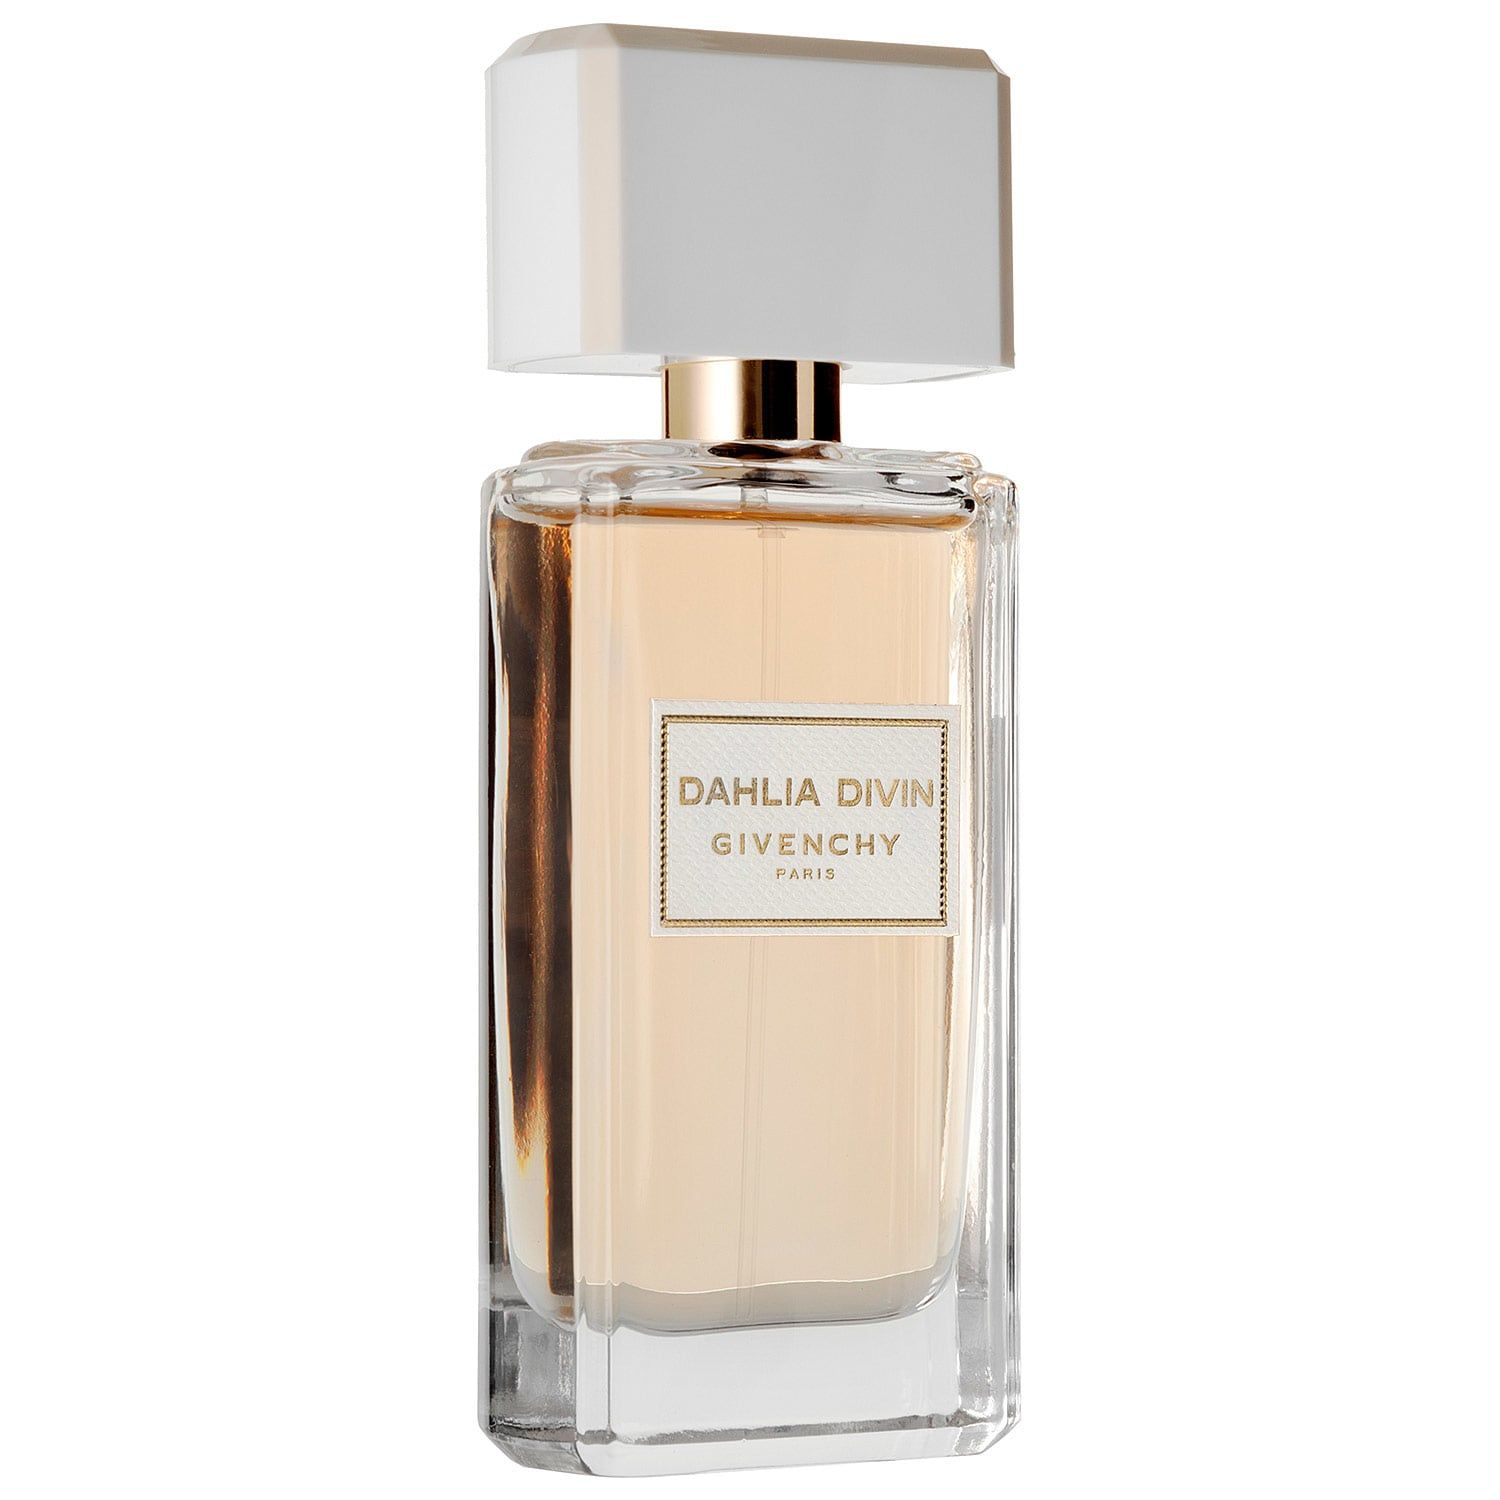 Dahlia 1 30 Parfum 2019 Givenchy Divin In Eau Ml Oz Spray De m8nw0vN